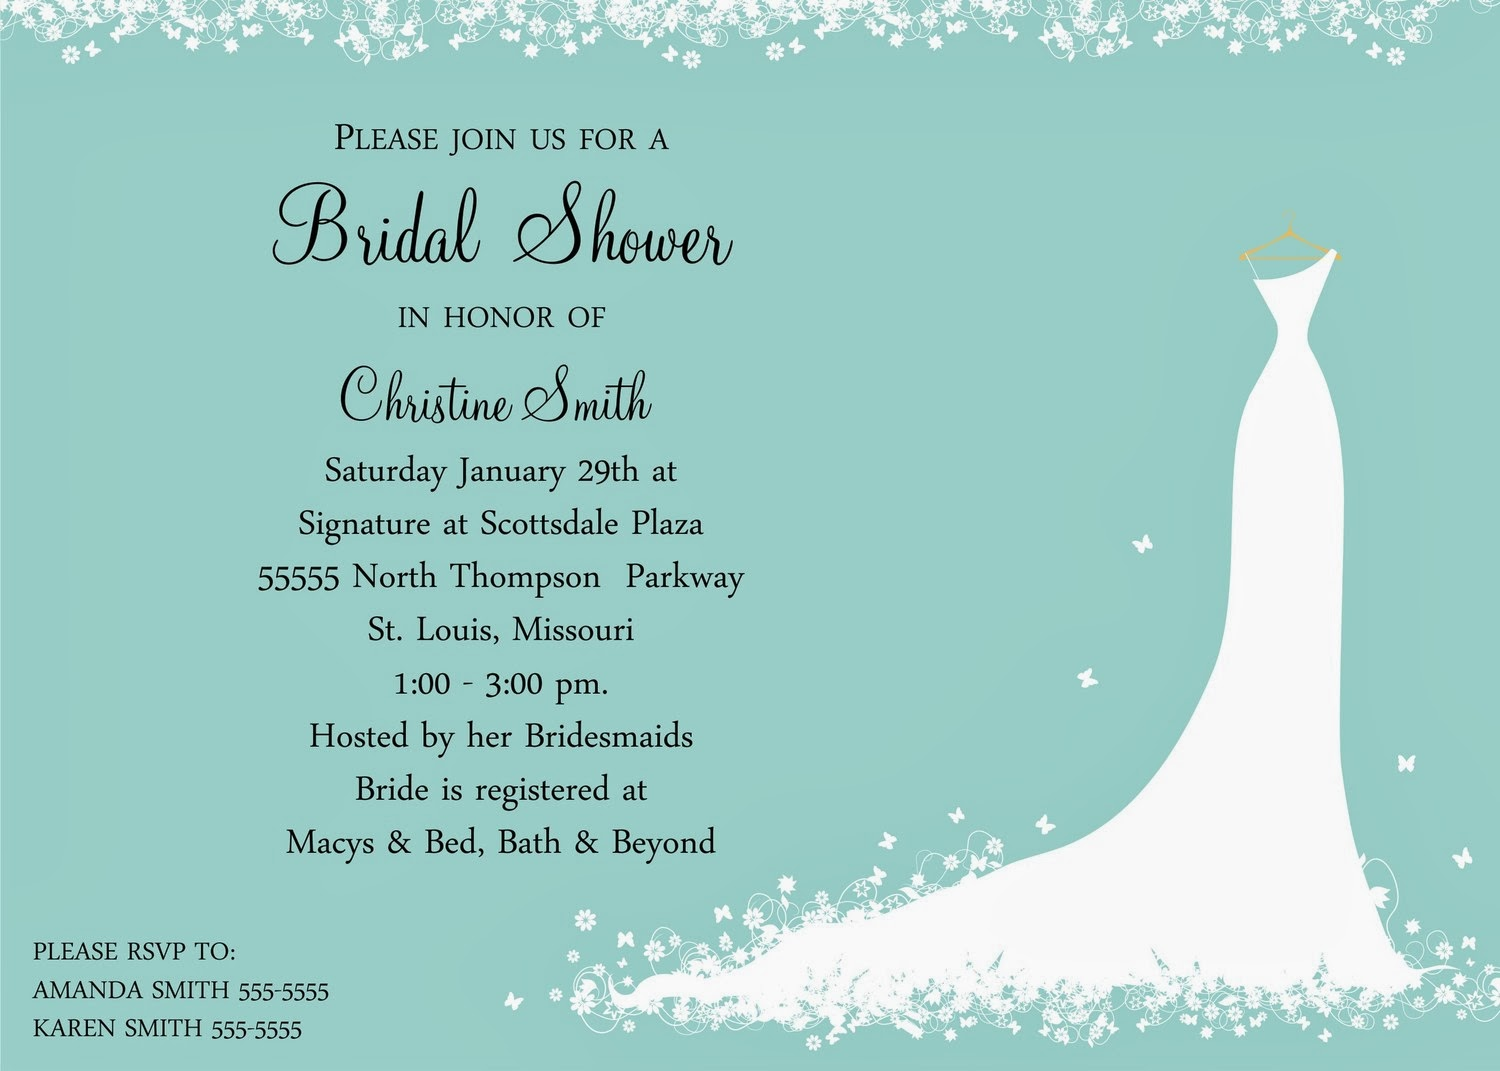 Bridal shower invitations bridal shower invitation for Invitations for wedding shower